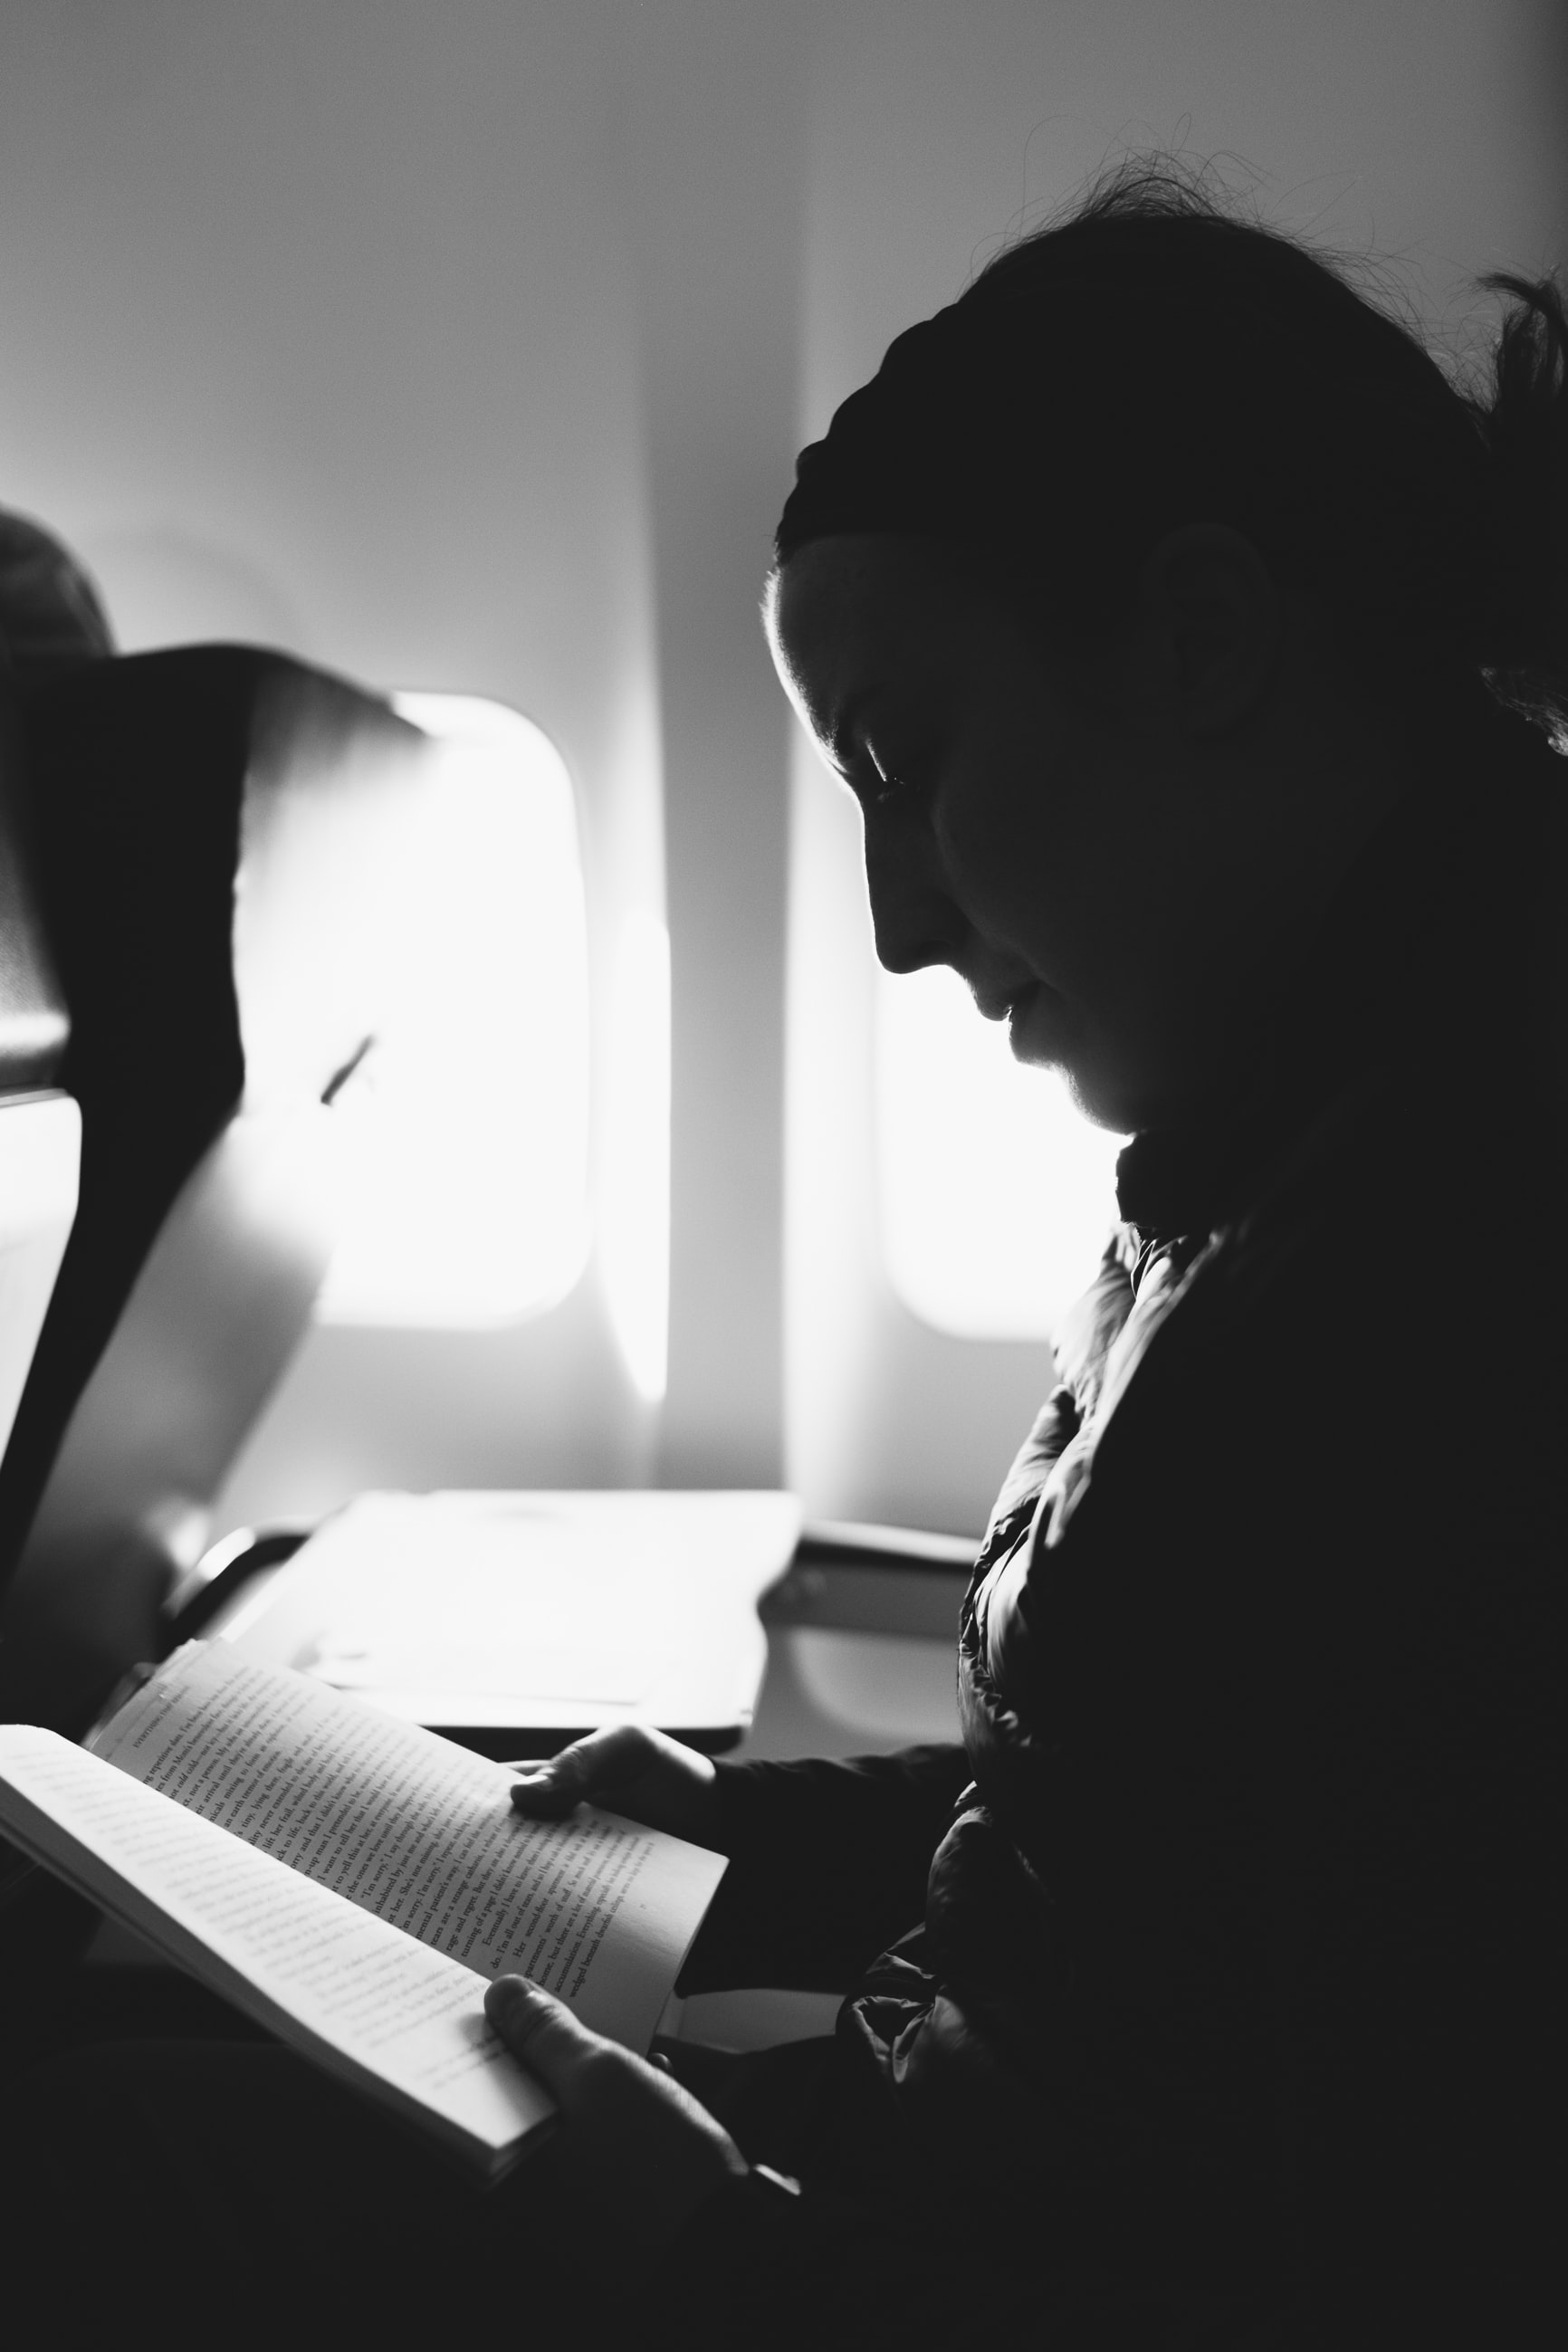 Black and white shot of man reading book in aeroplane